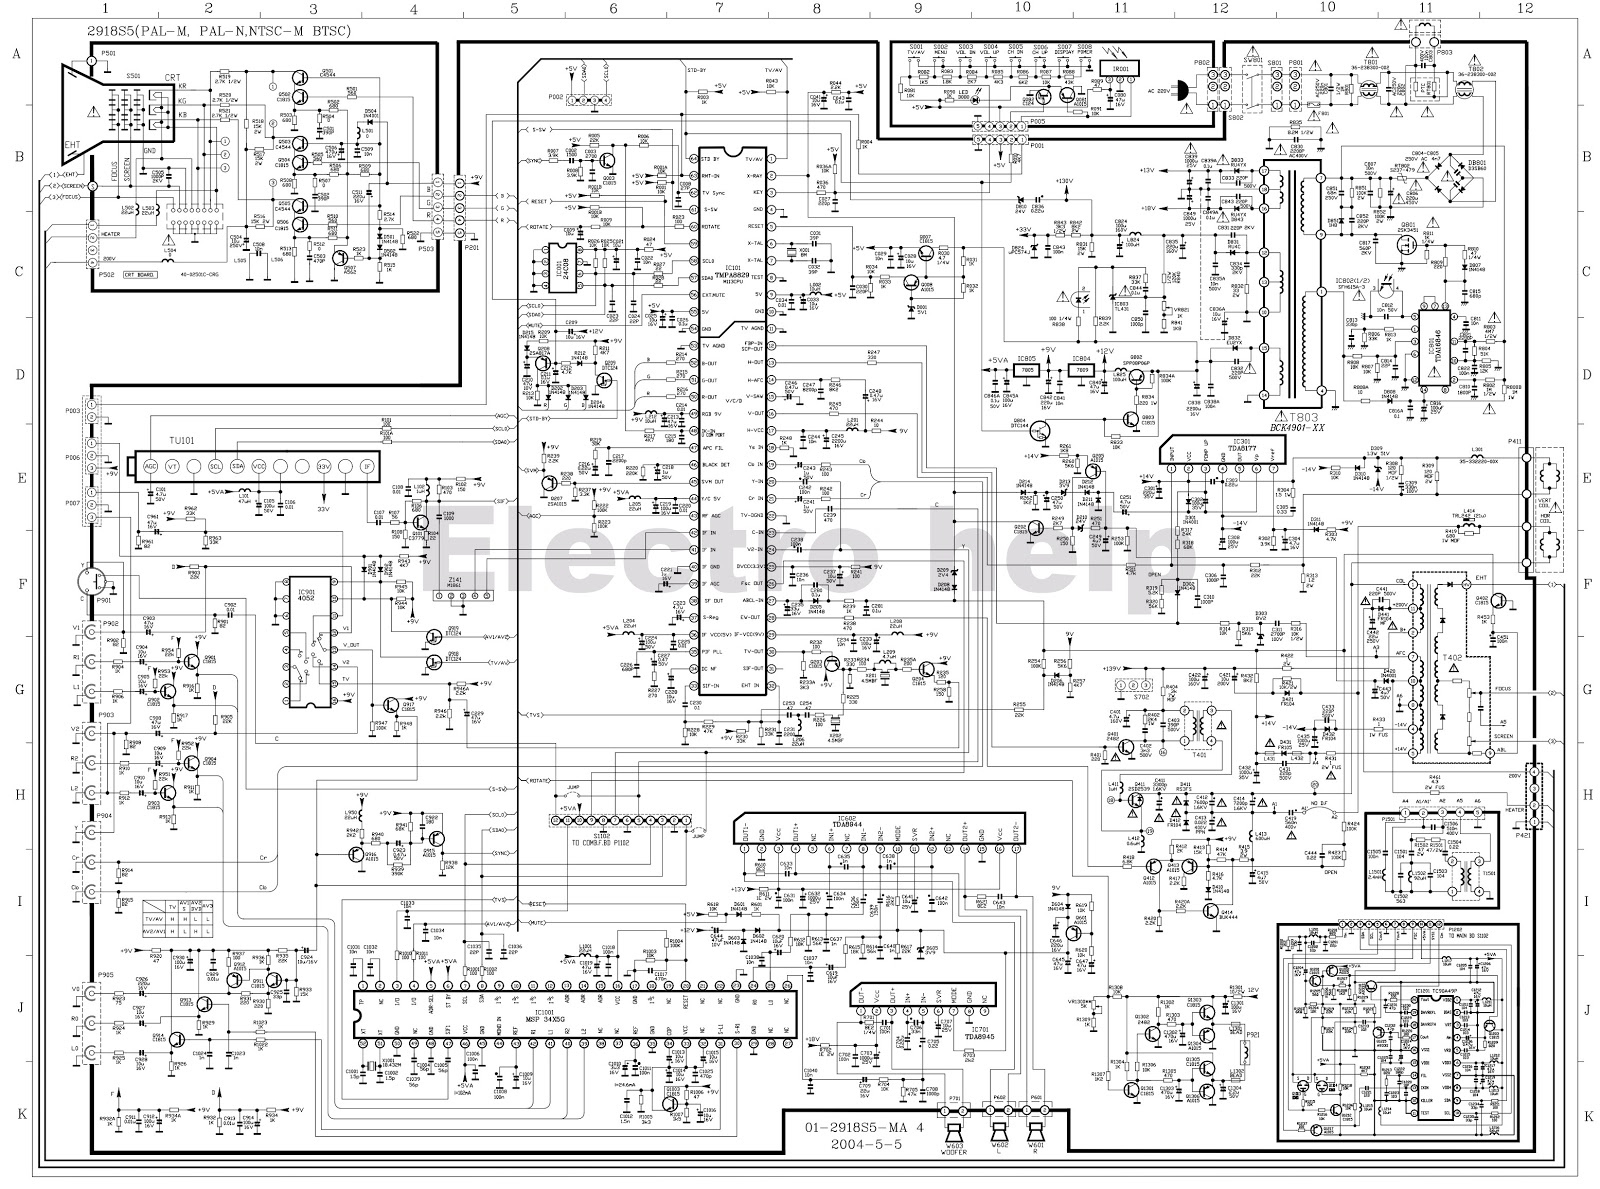 medium resolution of used ics 24c08 tmpa8829 4052 msp34x5g tda8944 tda8945 tc90a49p manguonblog colour tv kit circuit diagram